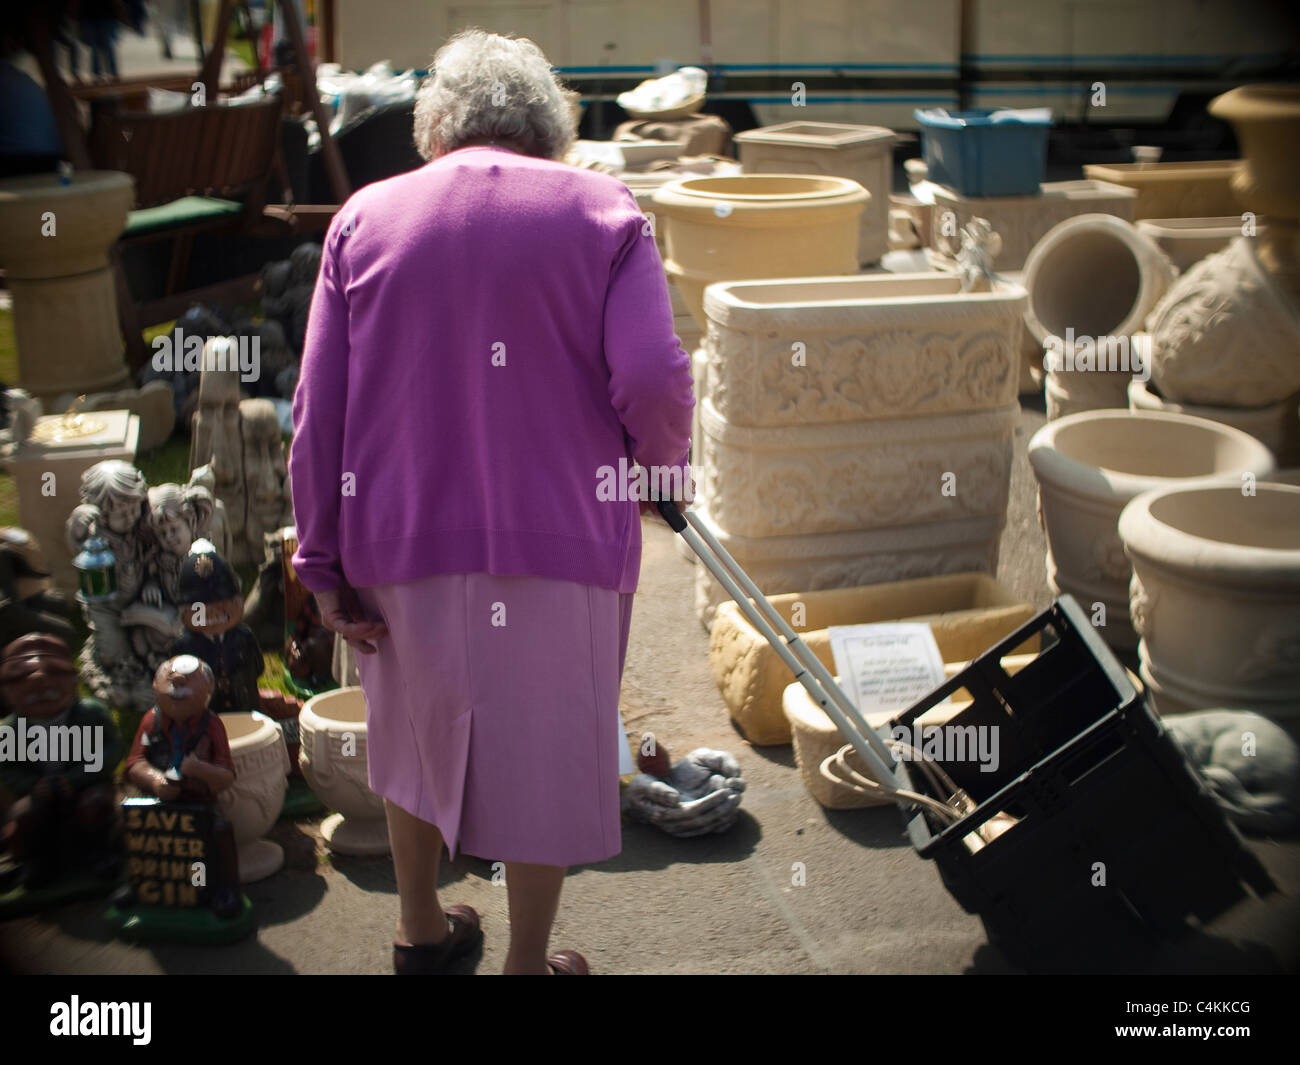 Old Lady with Trolley Dressed in Purple - Stock Image